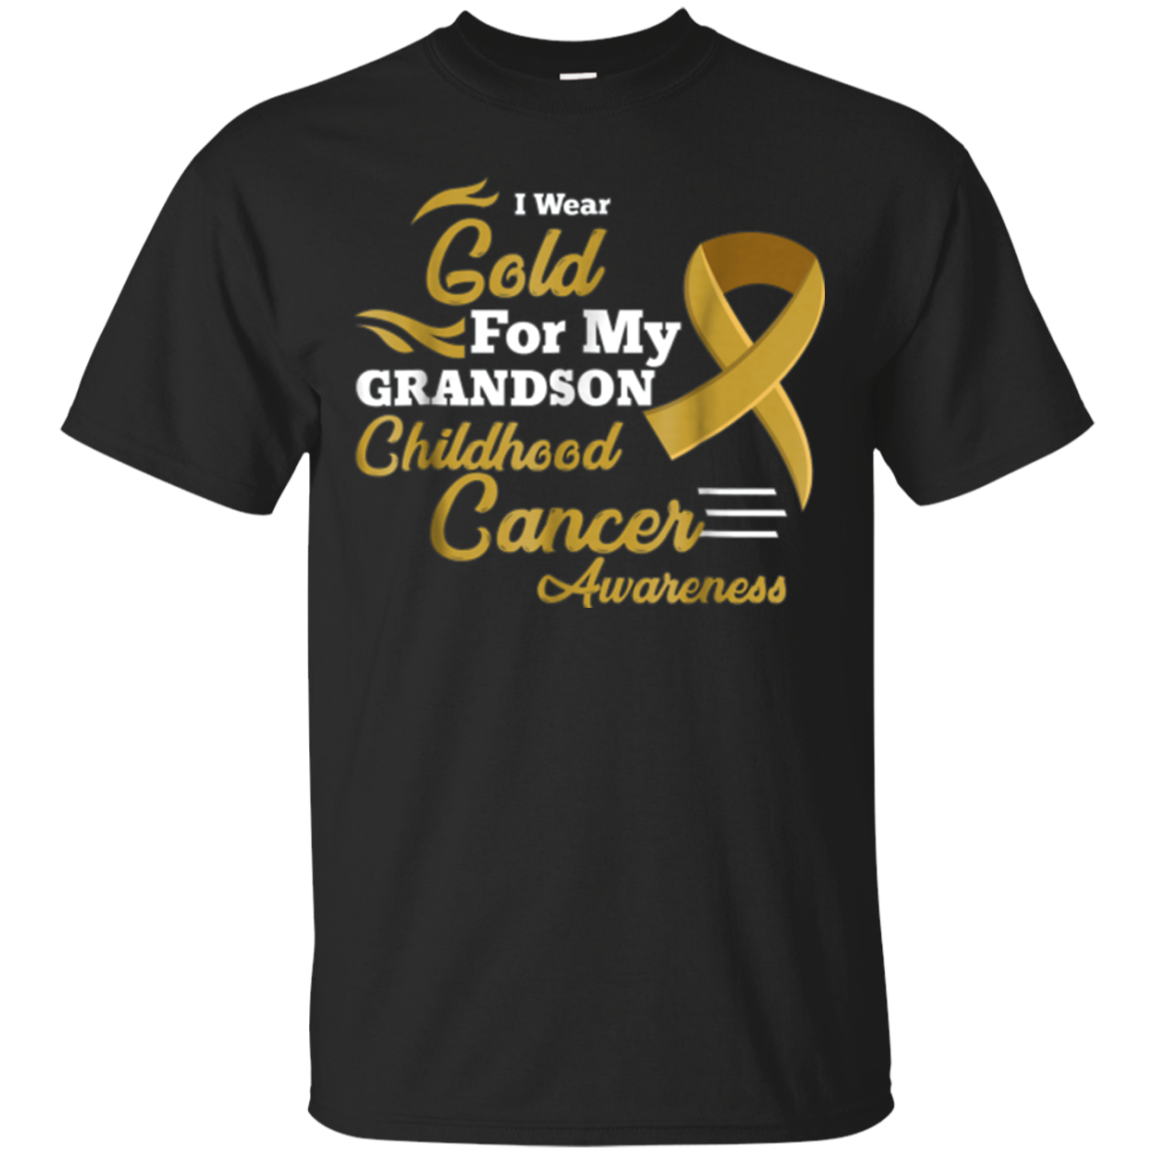 I Wear Gold for My Grandson Childhood Cancer Awareness Shirt